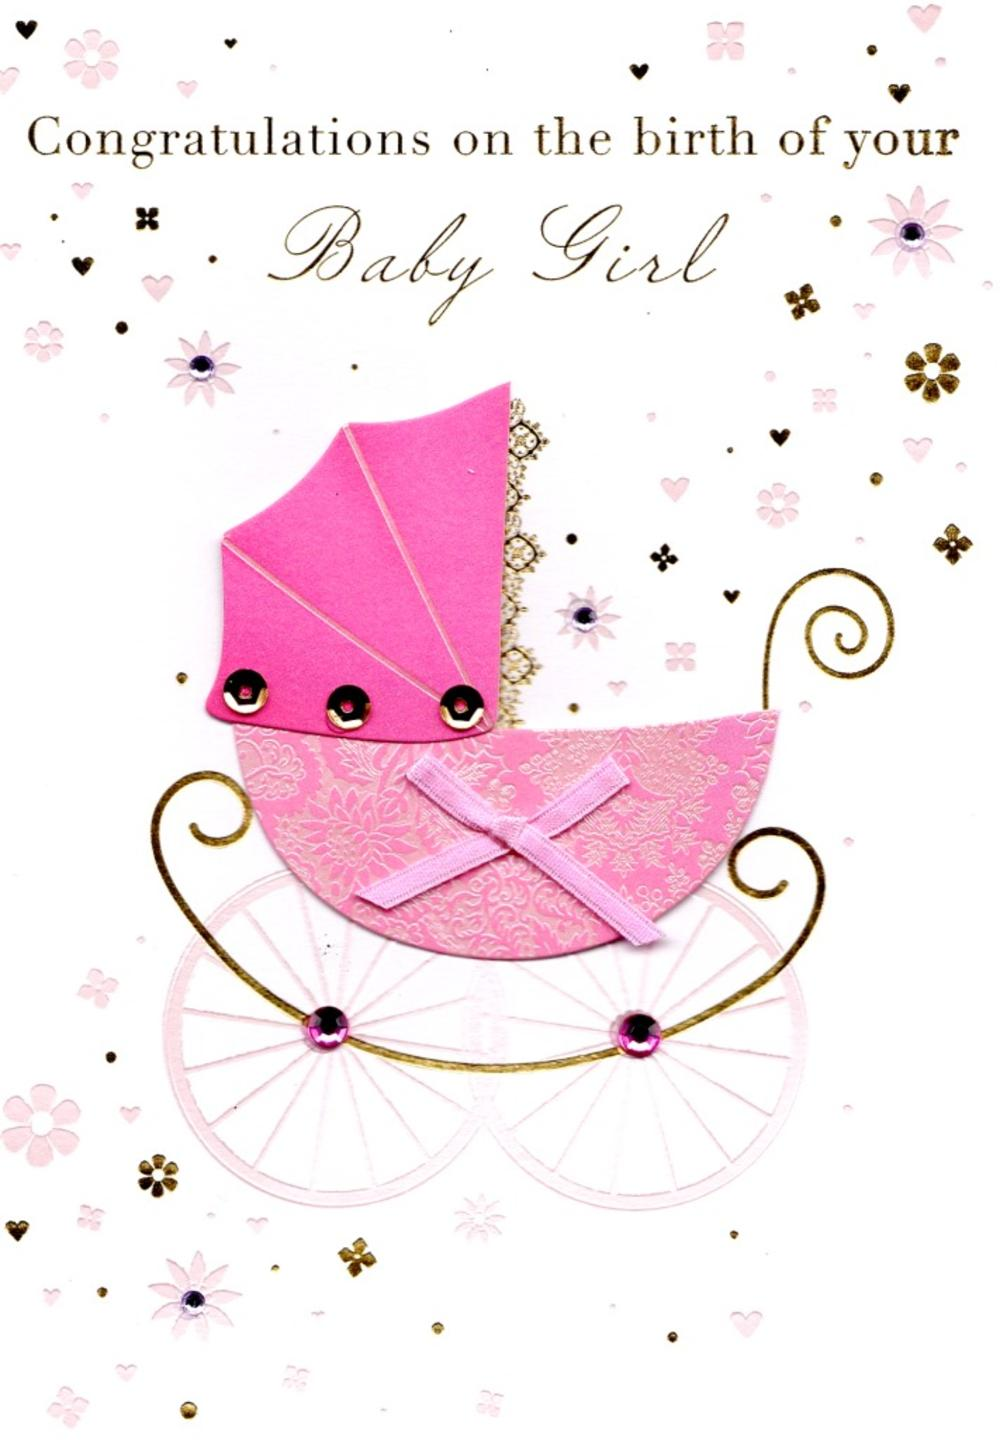 Congratulation for new baby girl vaydileforic congratulations birth new baby girl greeting card cards love kates m4hsunfo